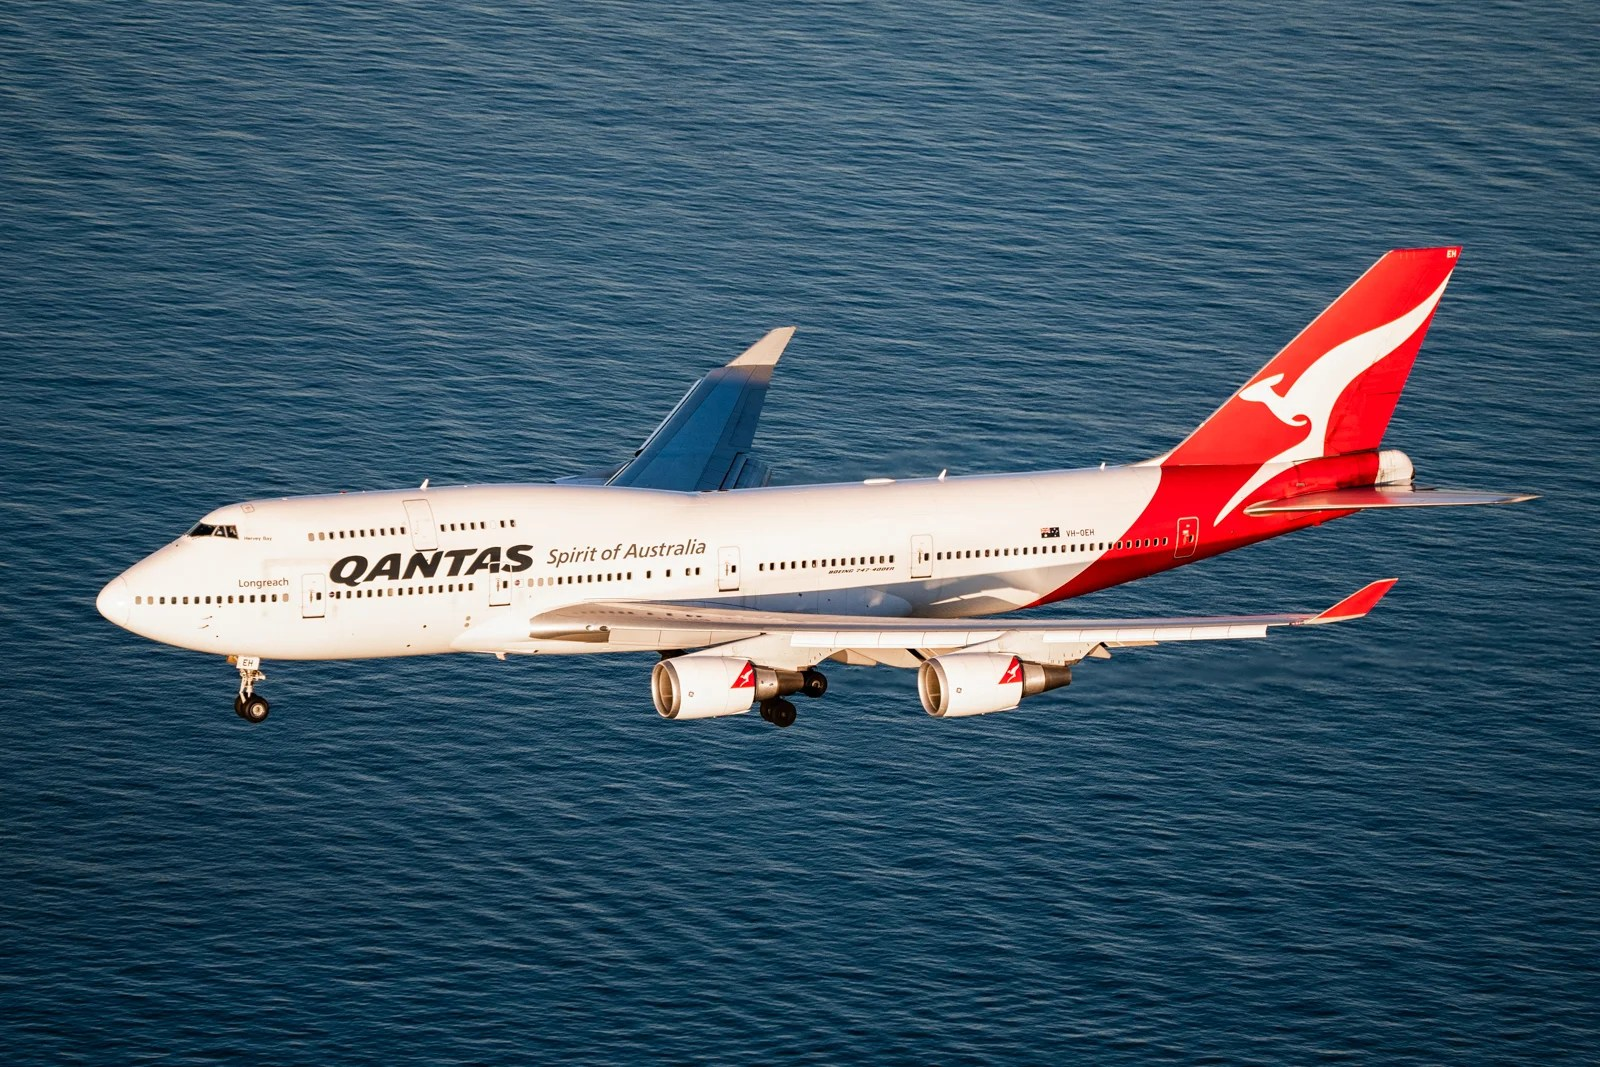 Why trans-ocean flights in the Southern Hemisphere are rare